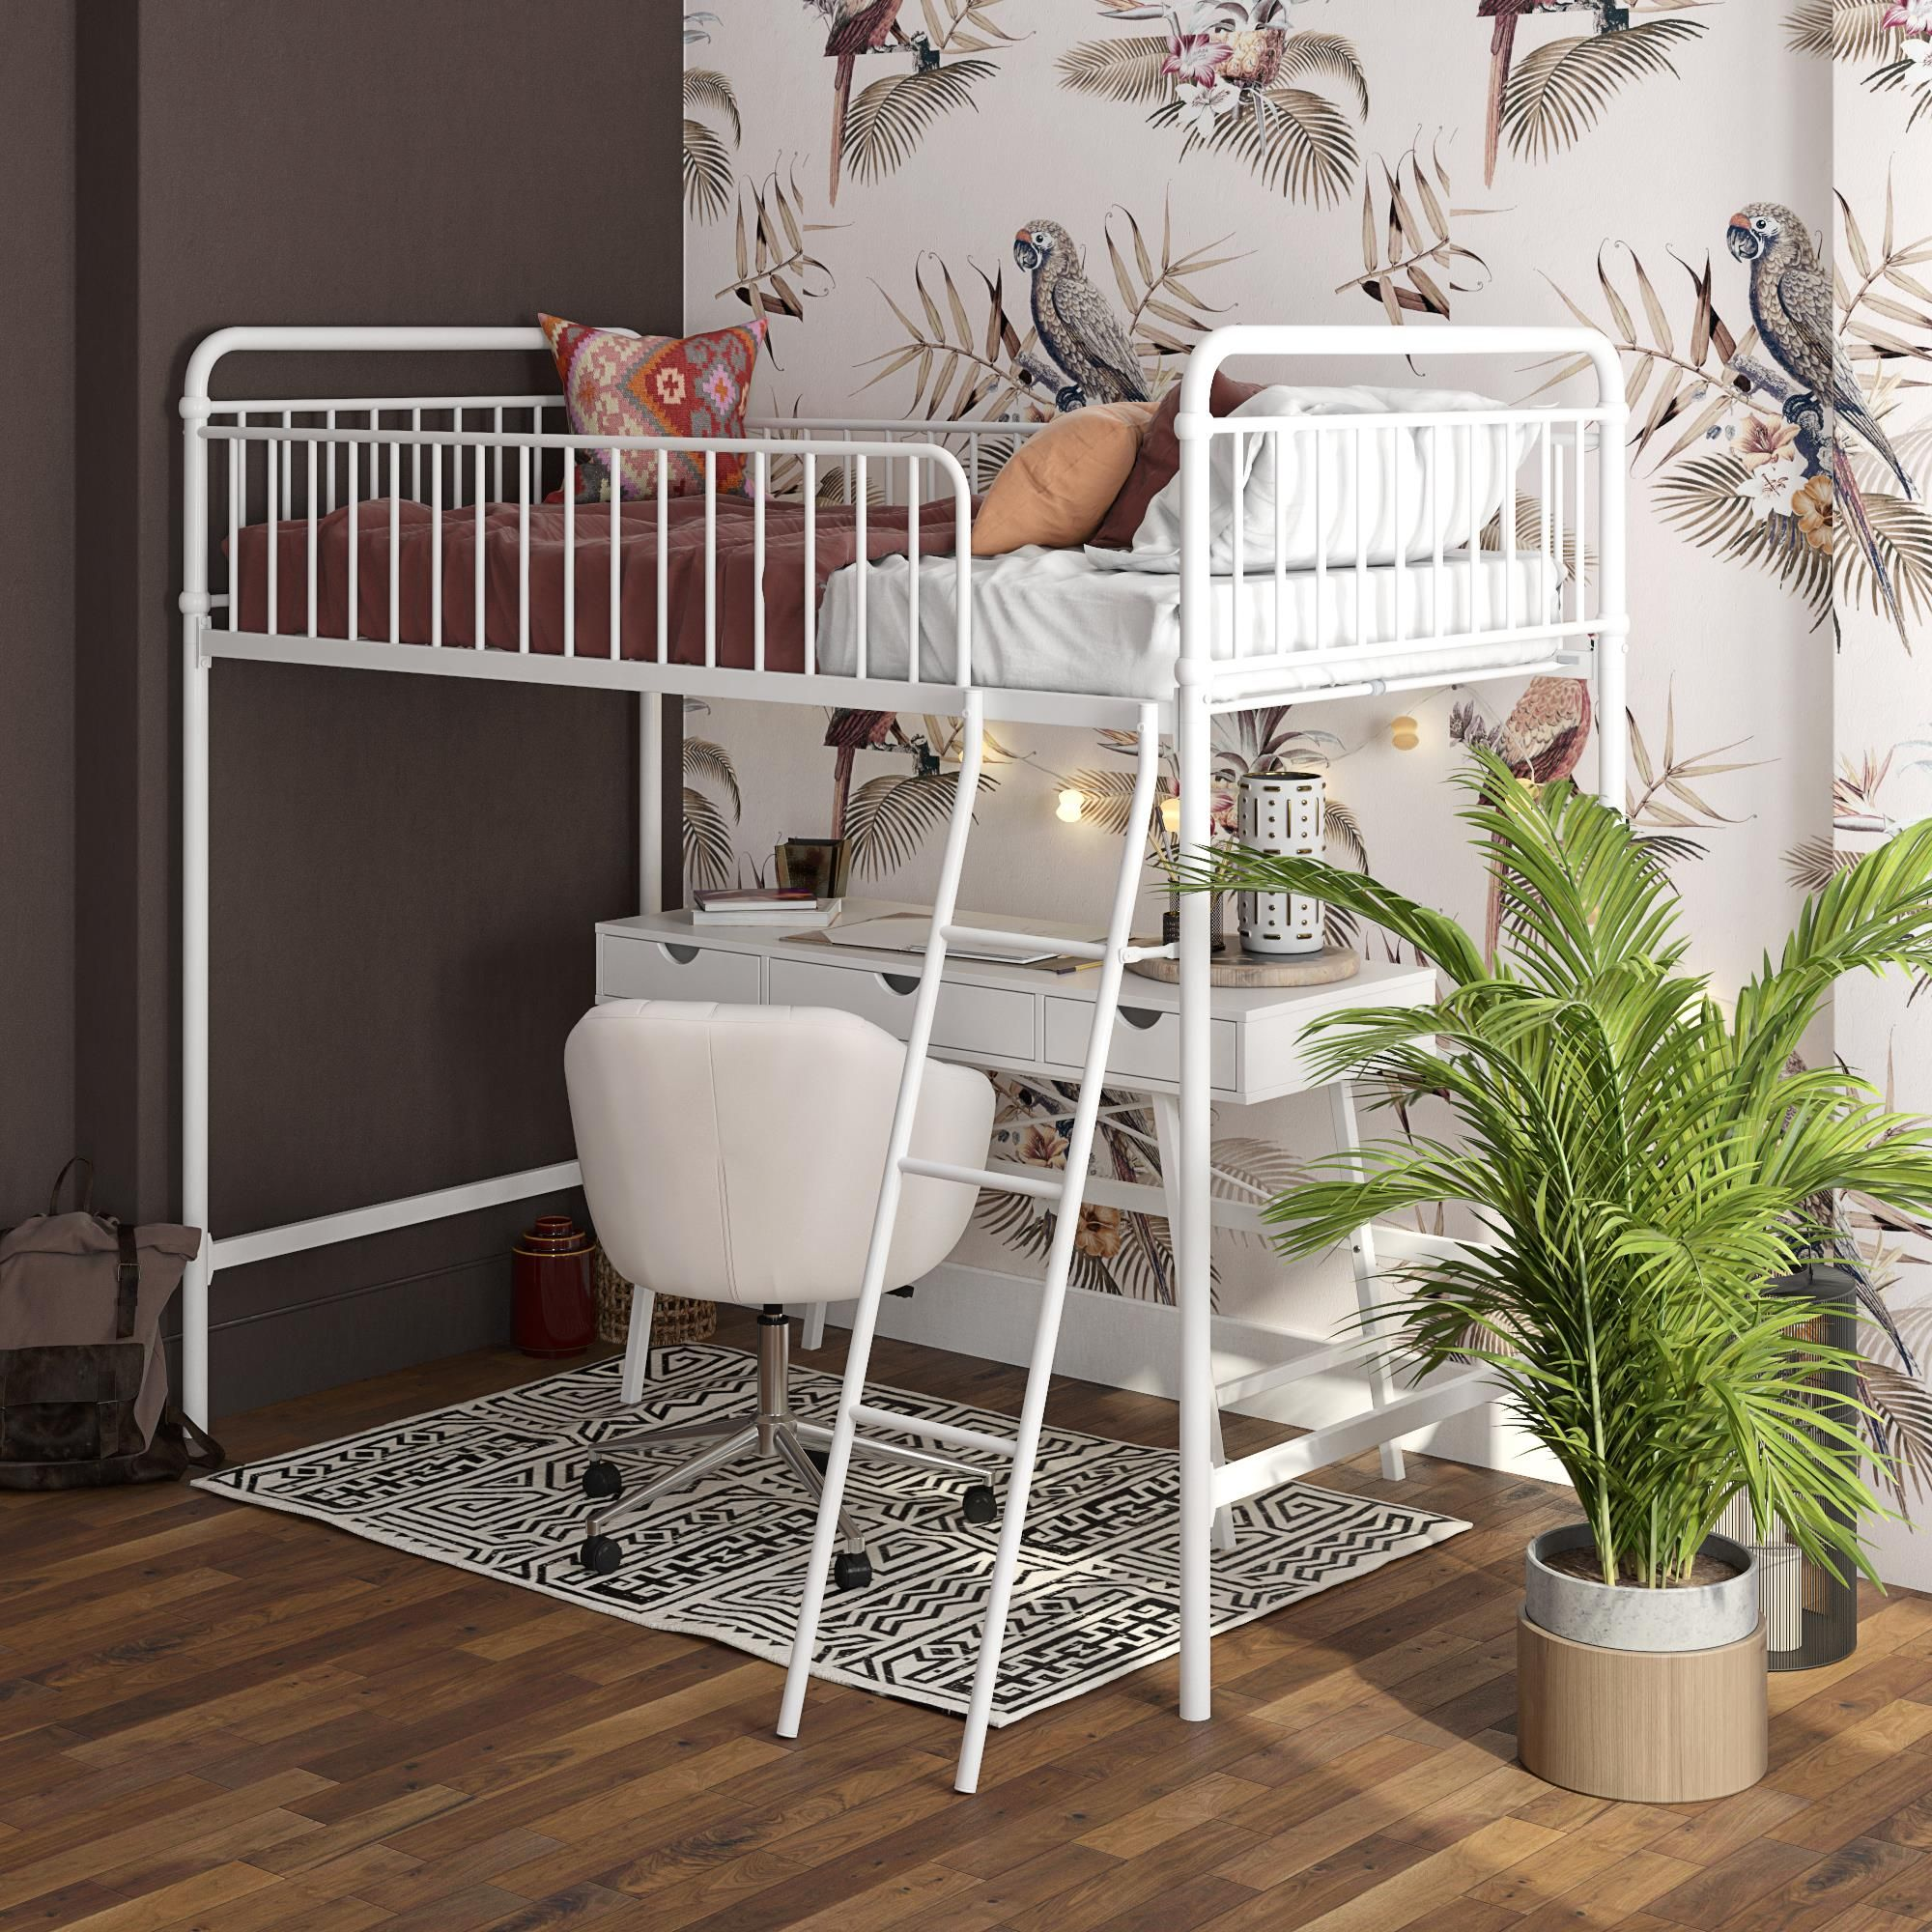 Better homes & gardens kelsey twin metal loft bed, white